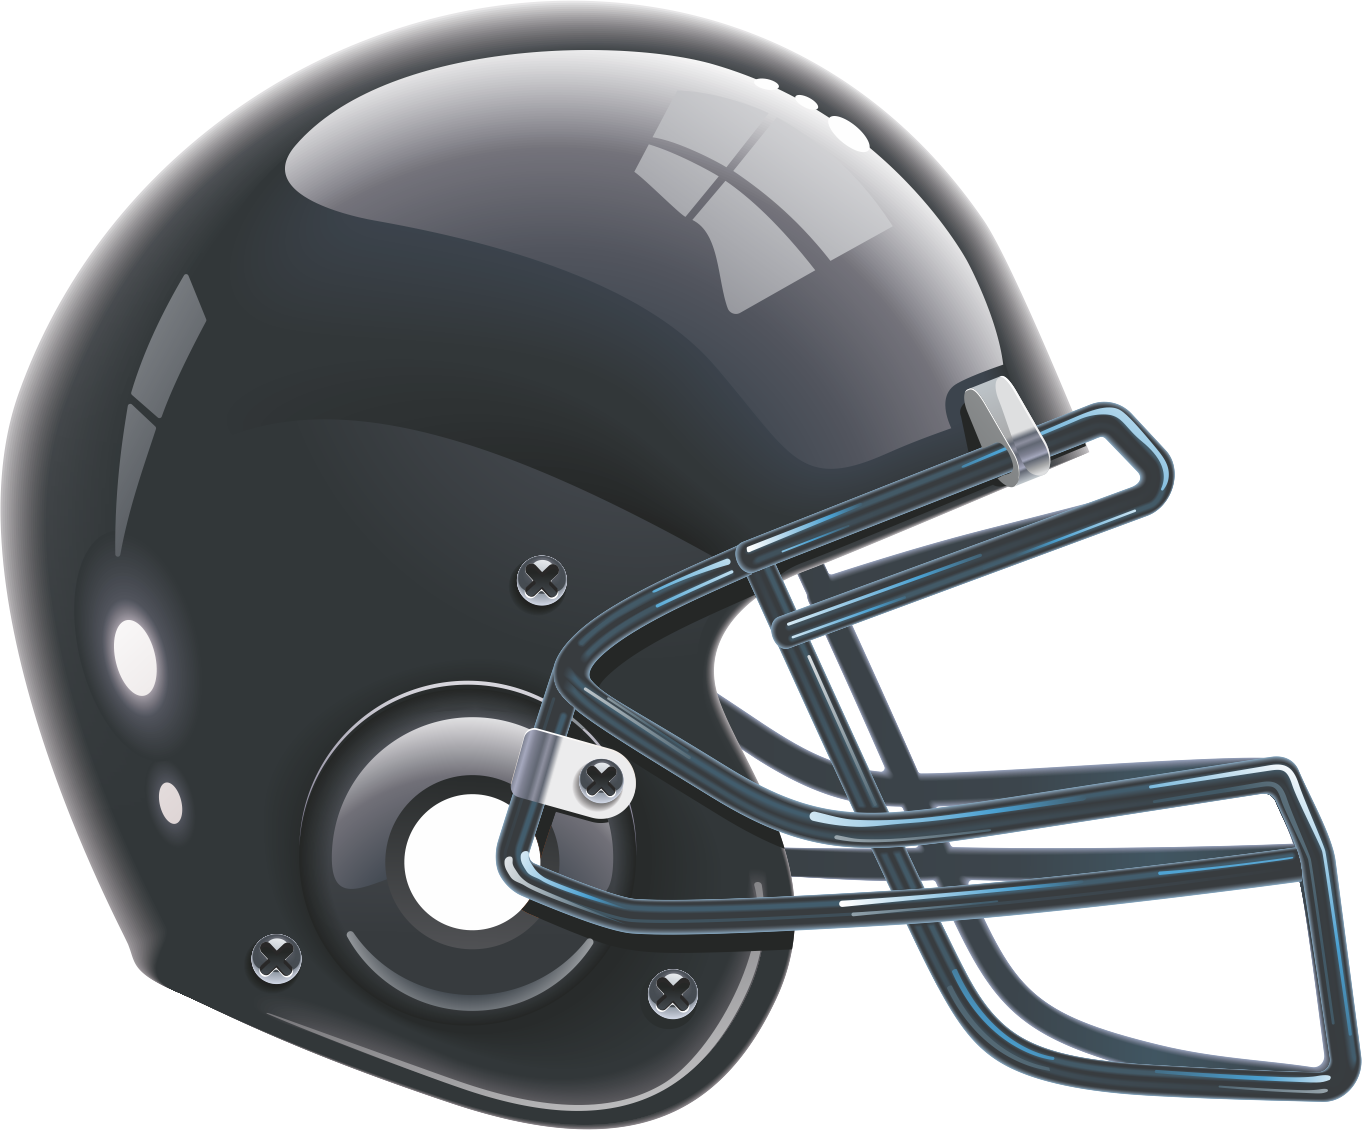 Sturgeon vs bisons ontario. Black football helmet png